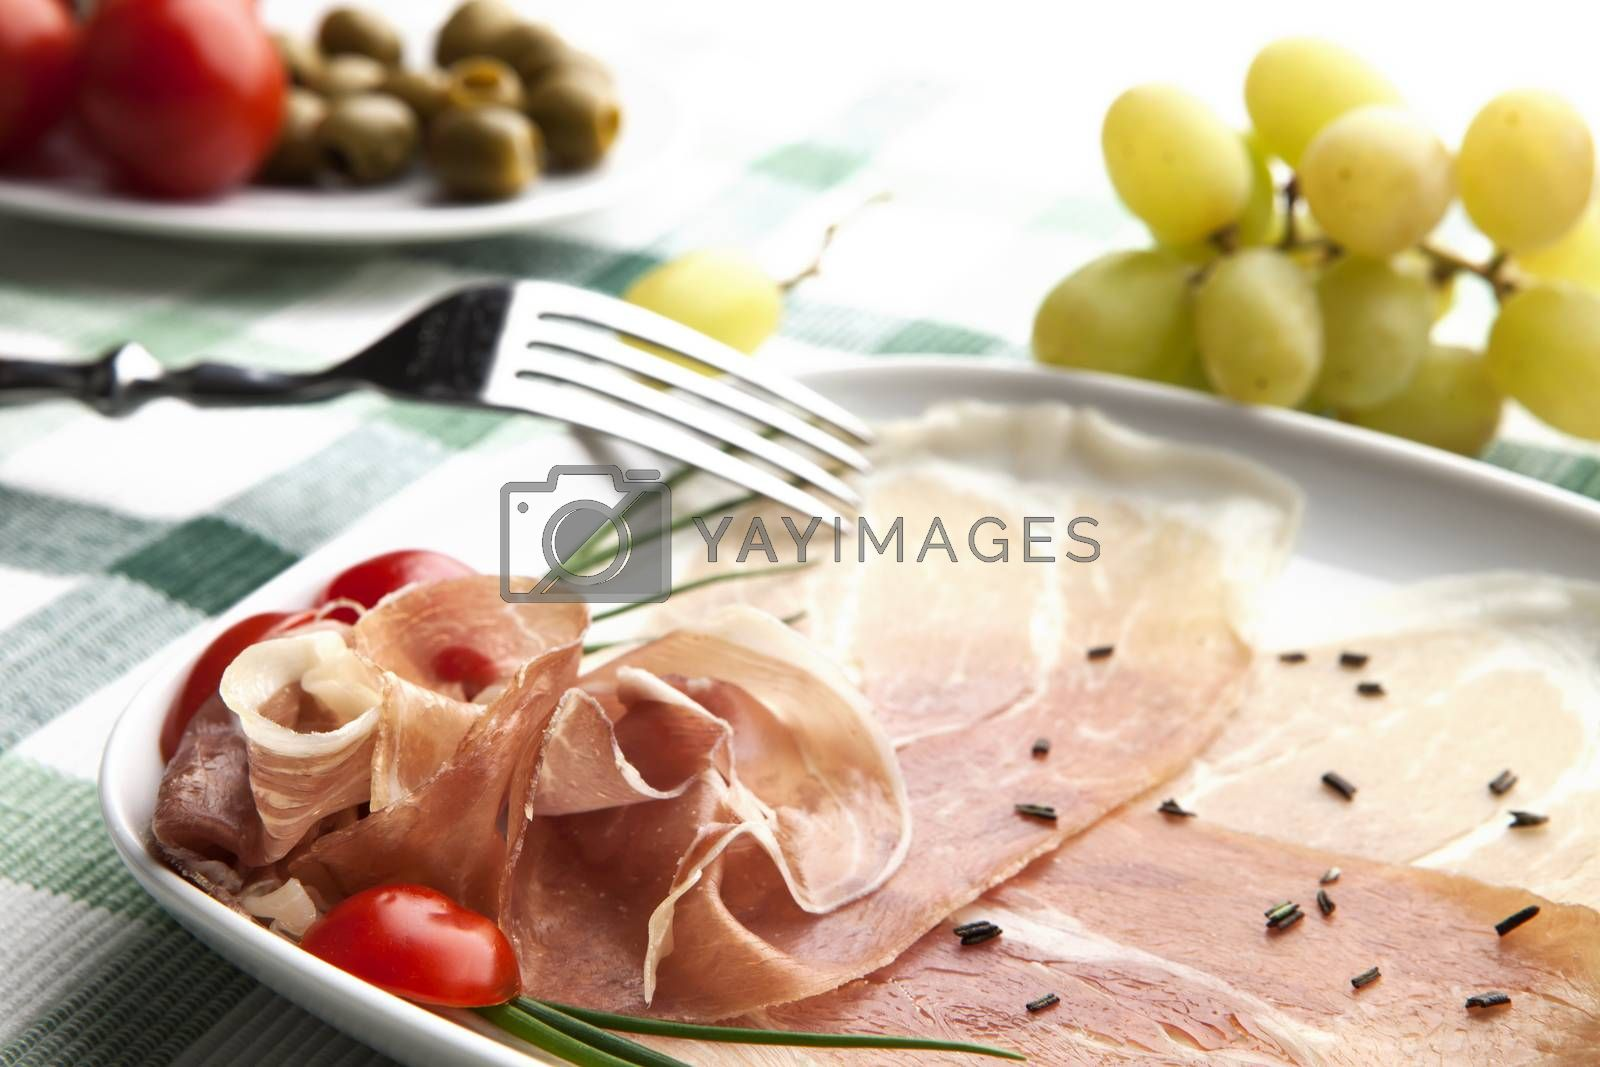 Delicious prosciutto plate with olives, tomatos, grapes and a fork.